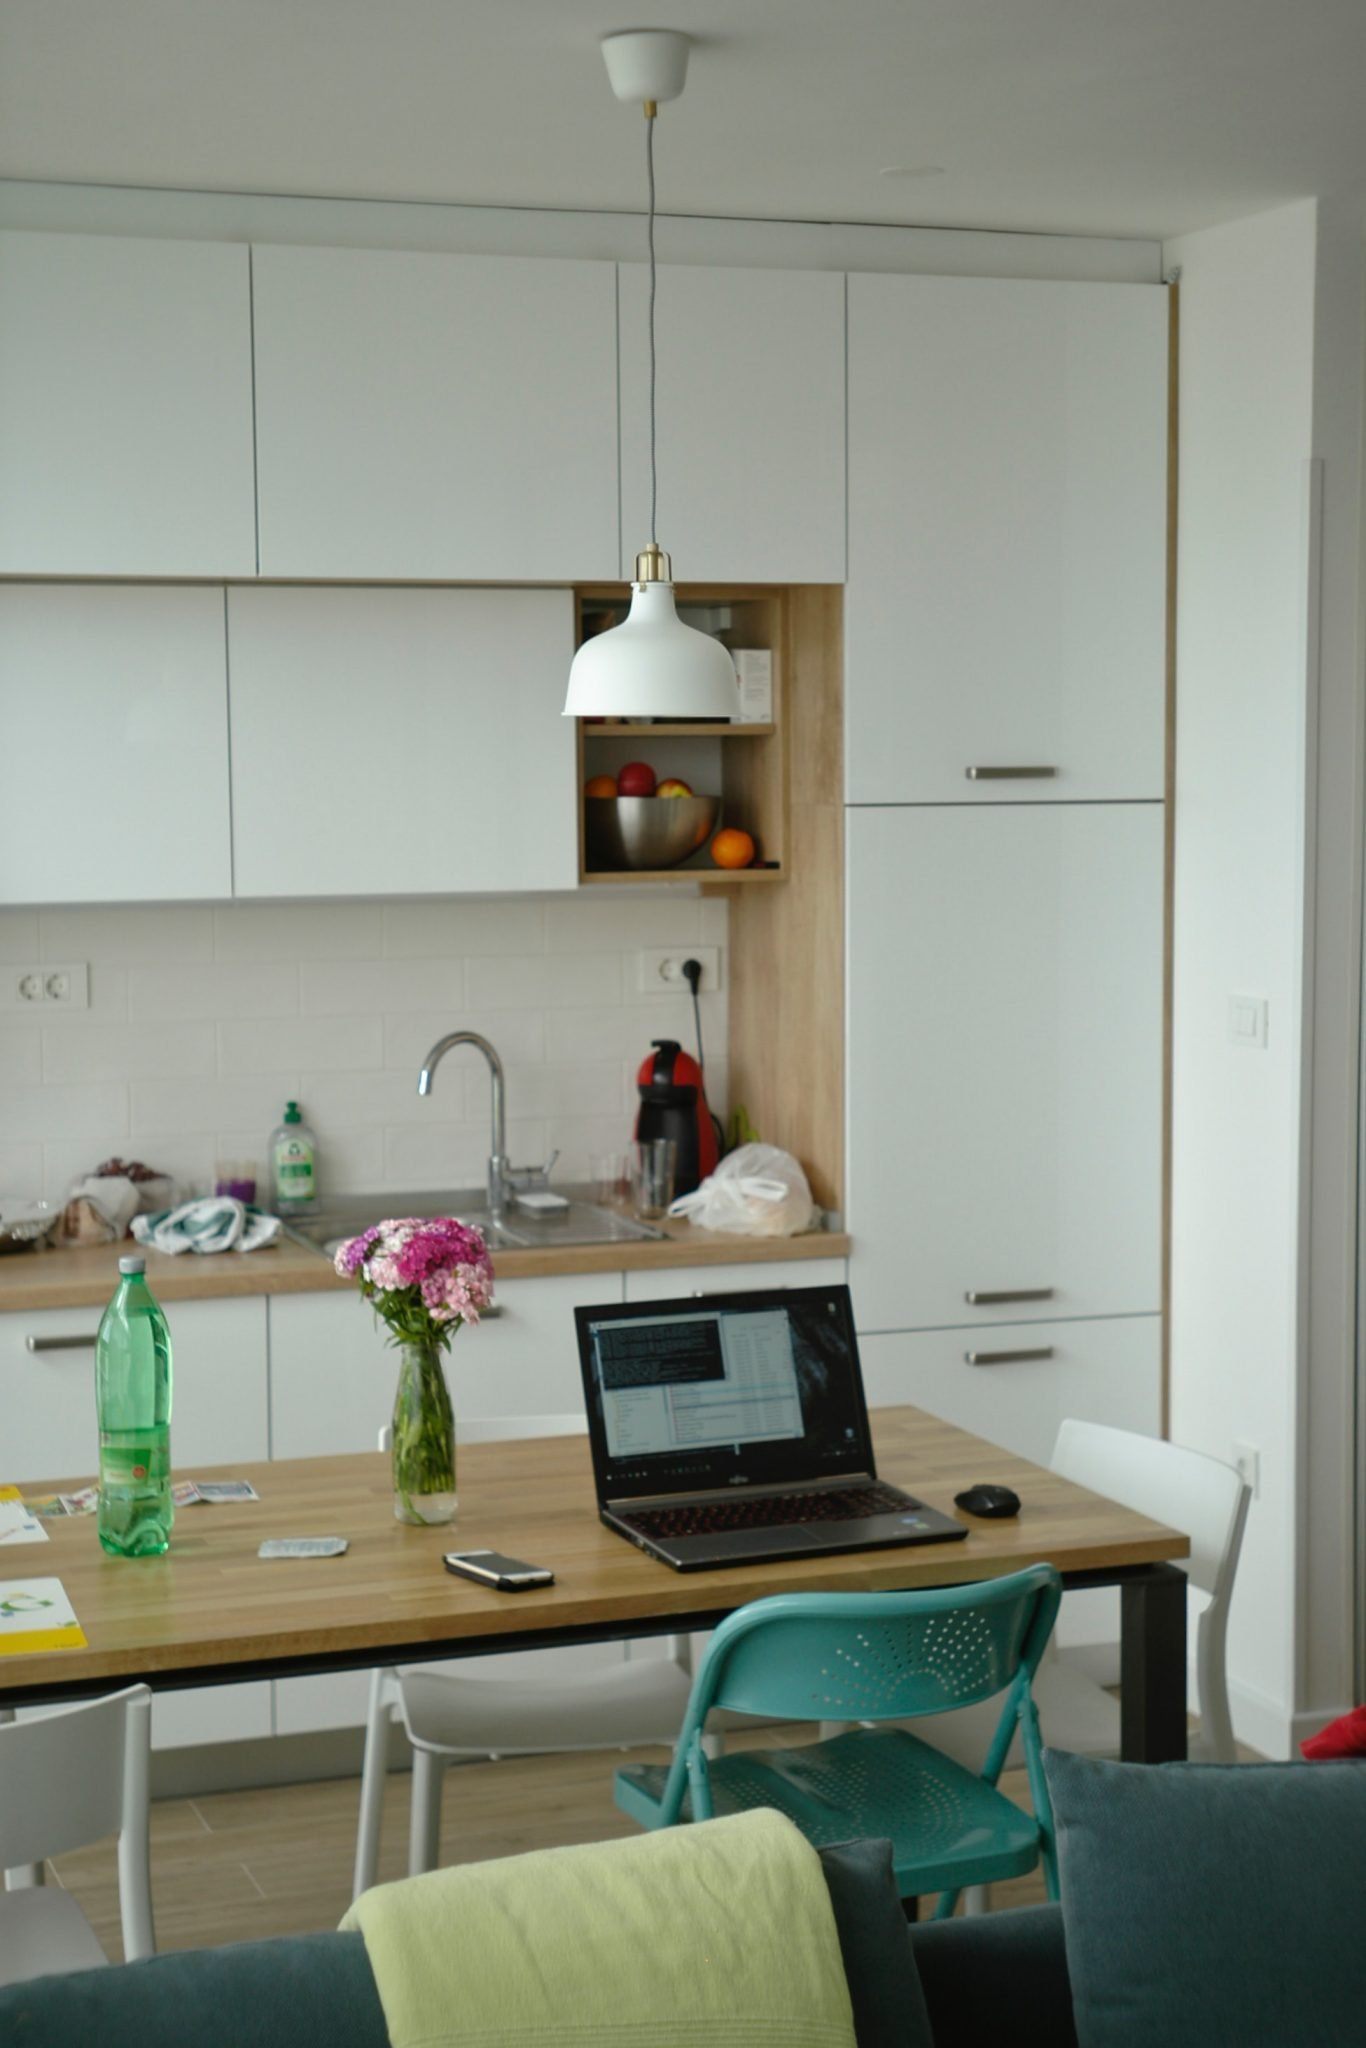 Laptop And Other Items On Kitchen Table With Kitchen In Background, A Great Work-at-home Setup For Laid Off People